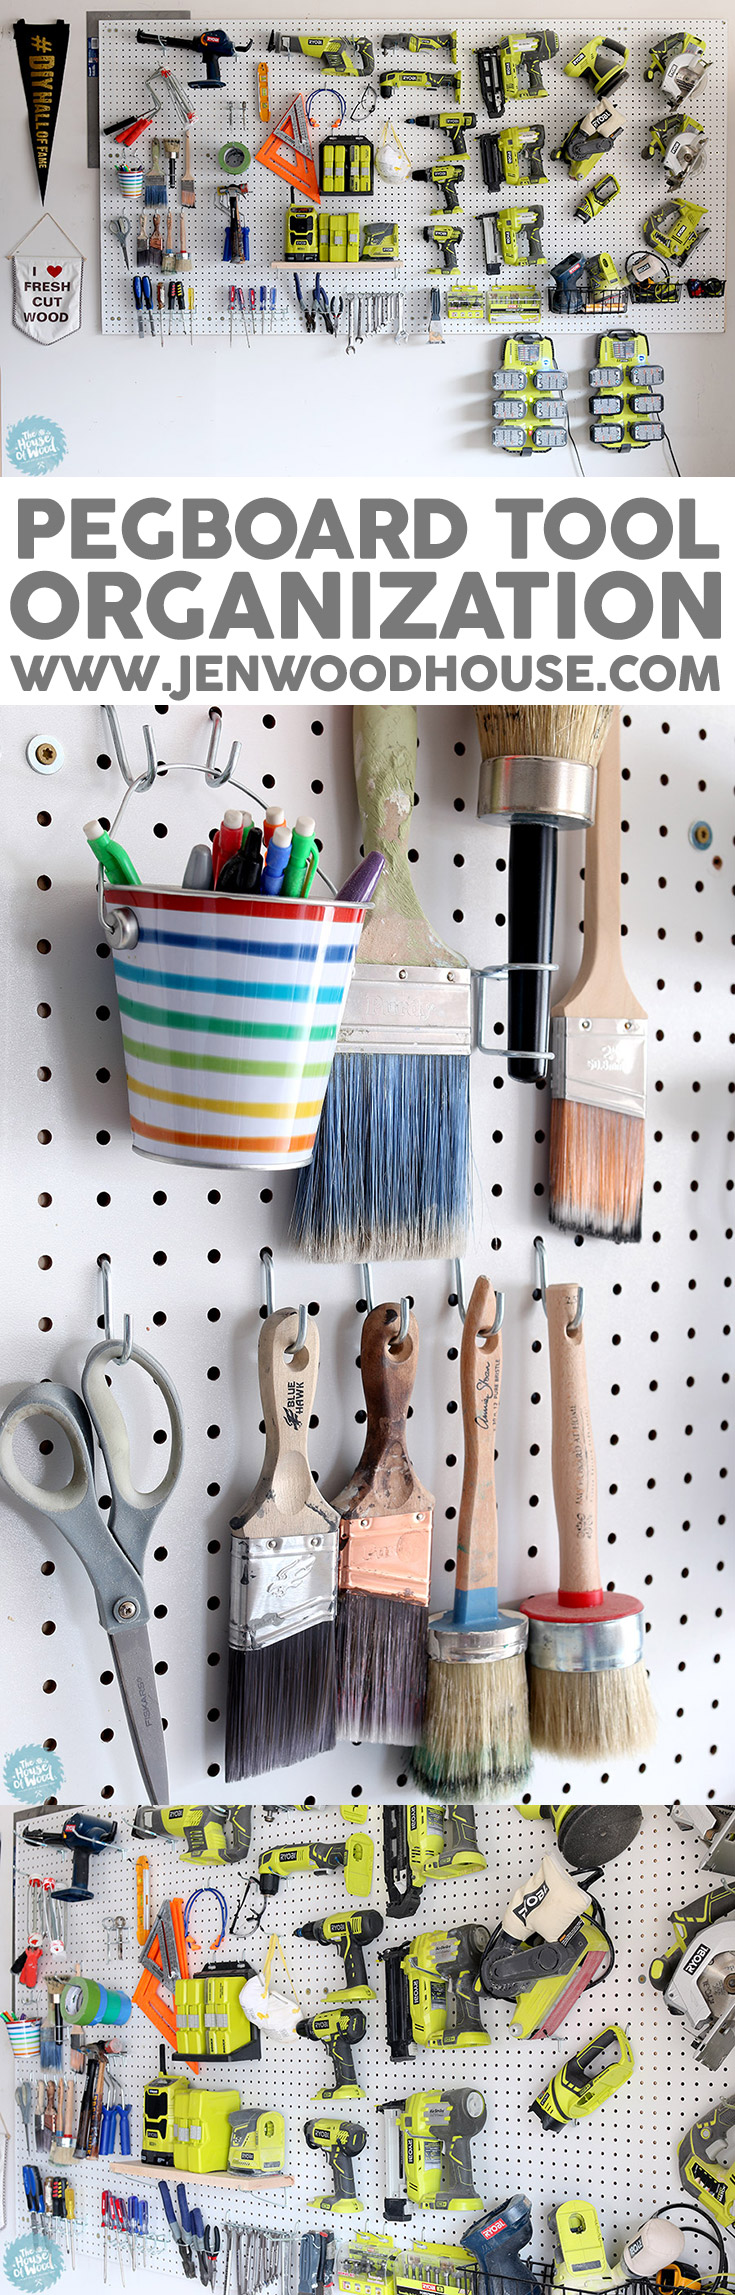 How to organize the tools in your garage using pegboard via Jen Woodhouse